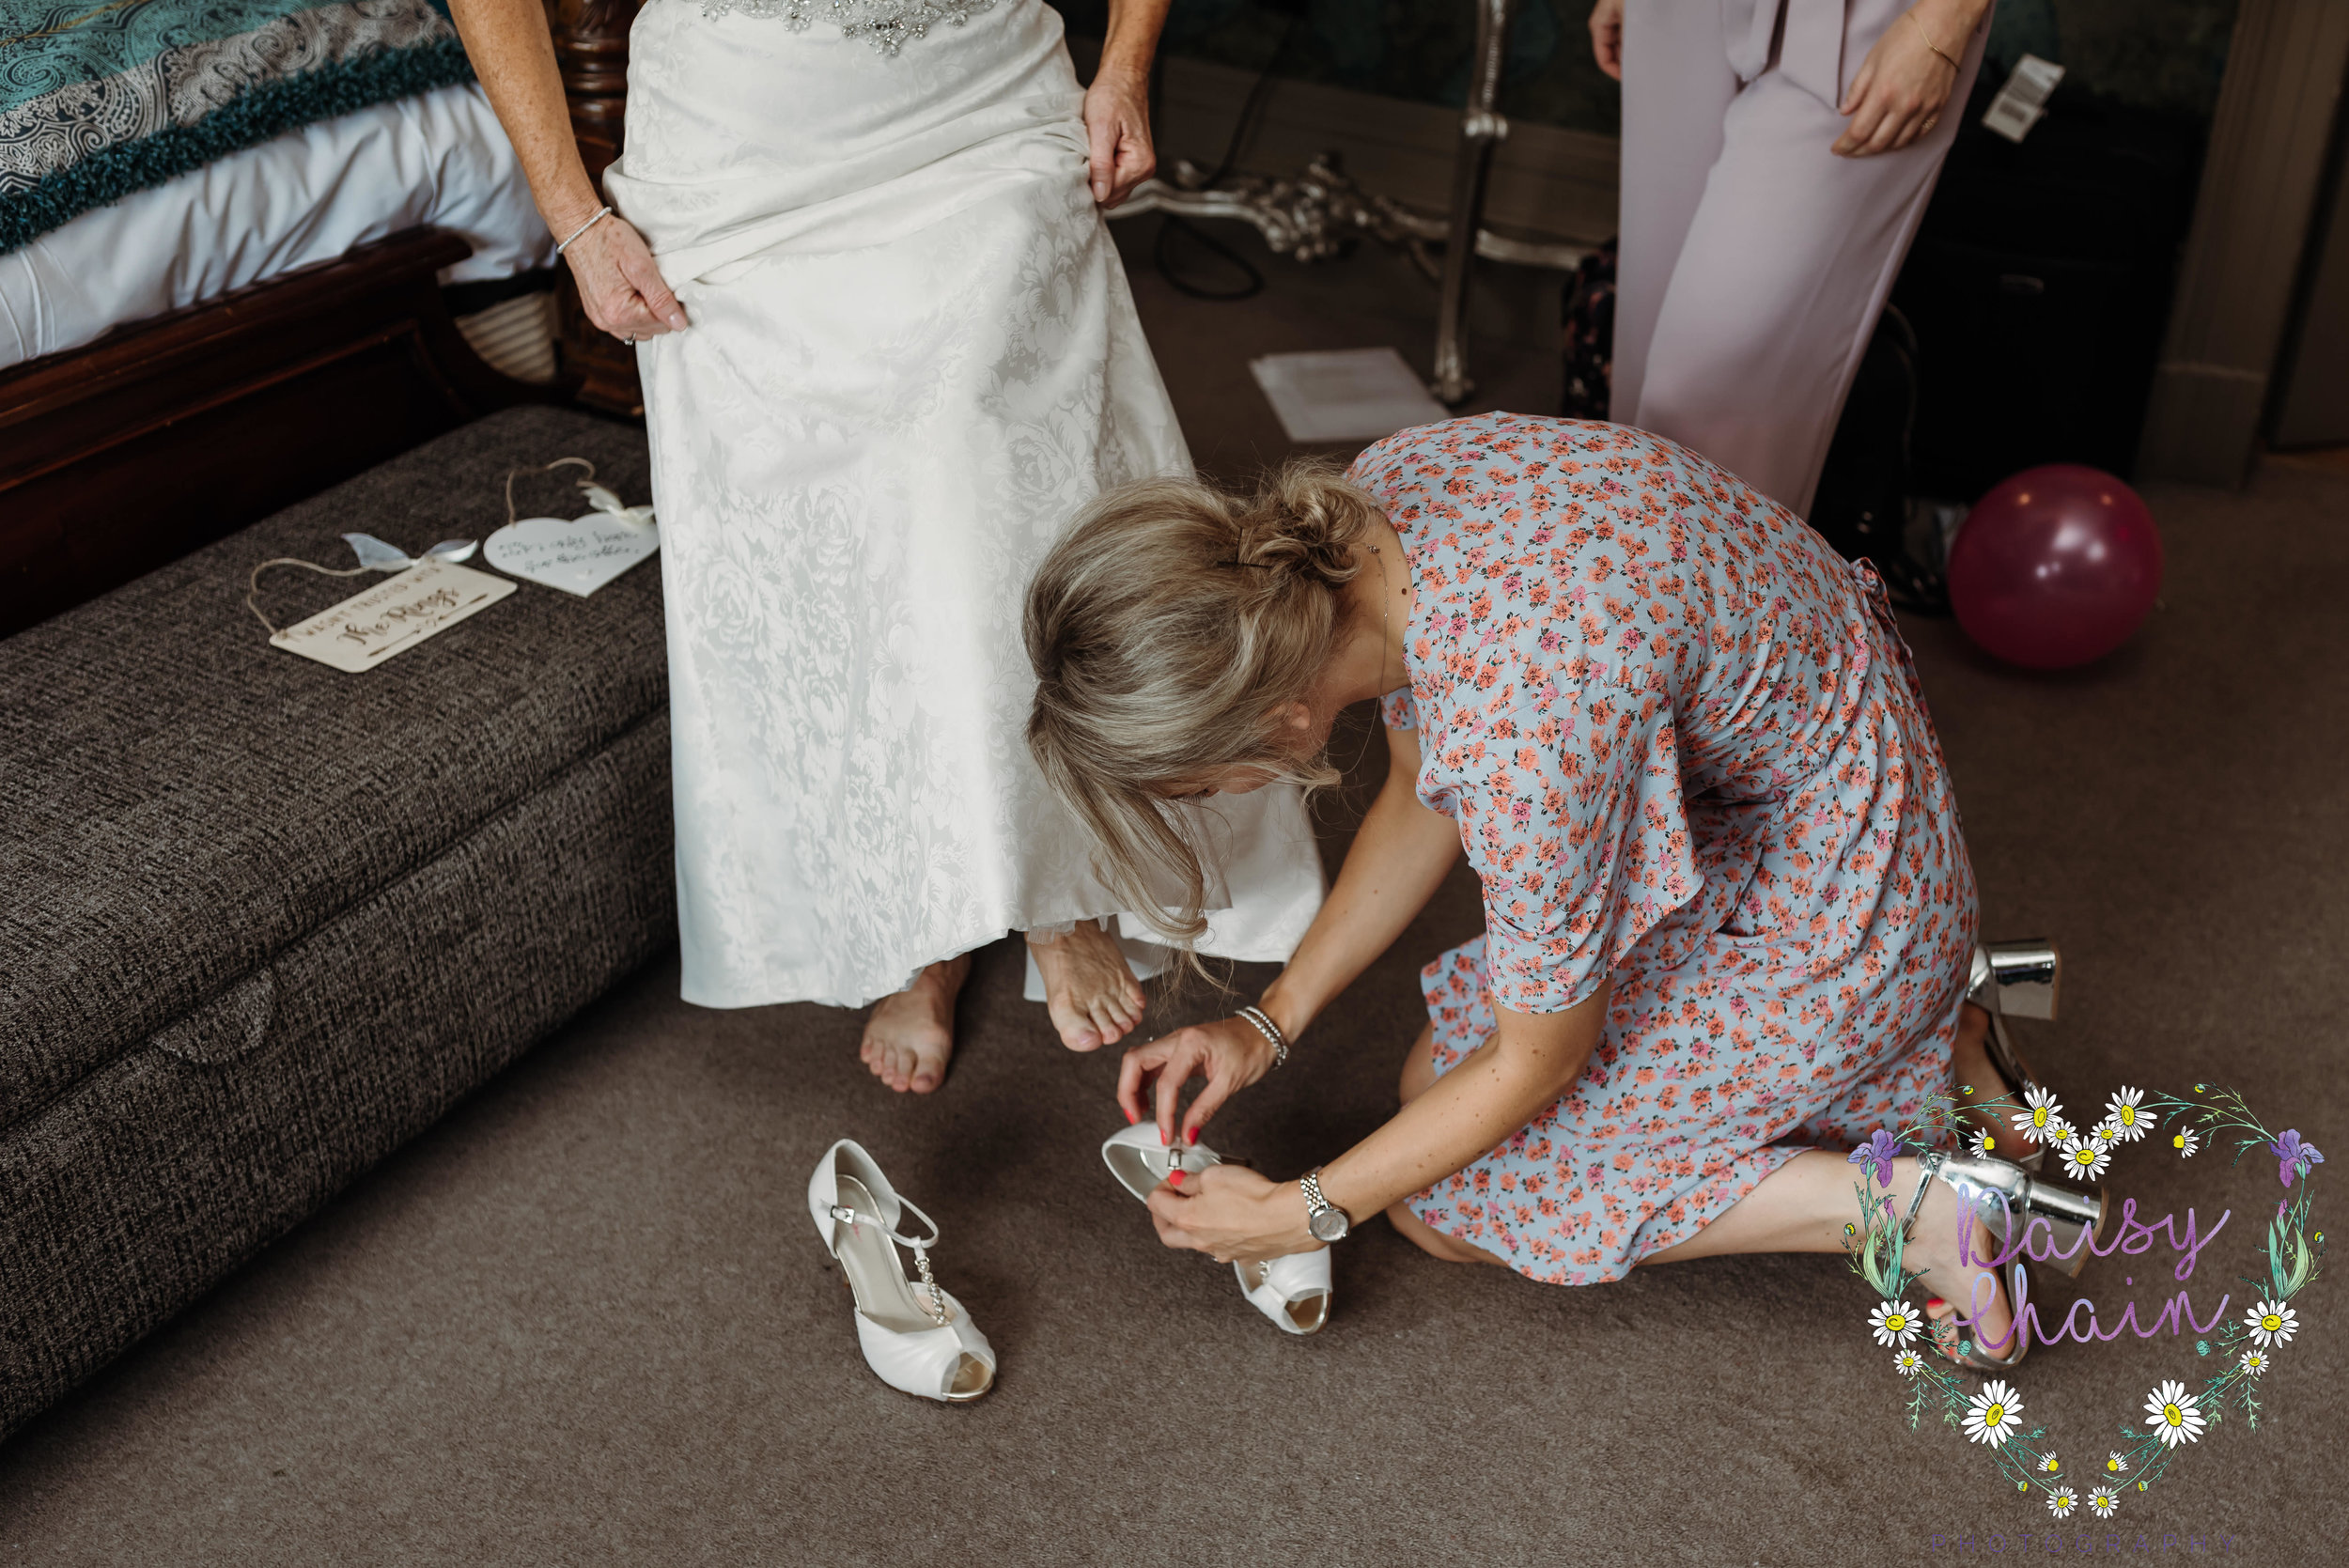 Putting the brides shoes on